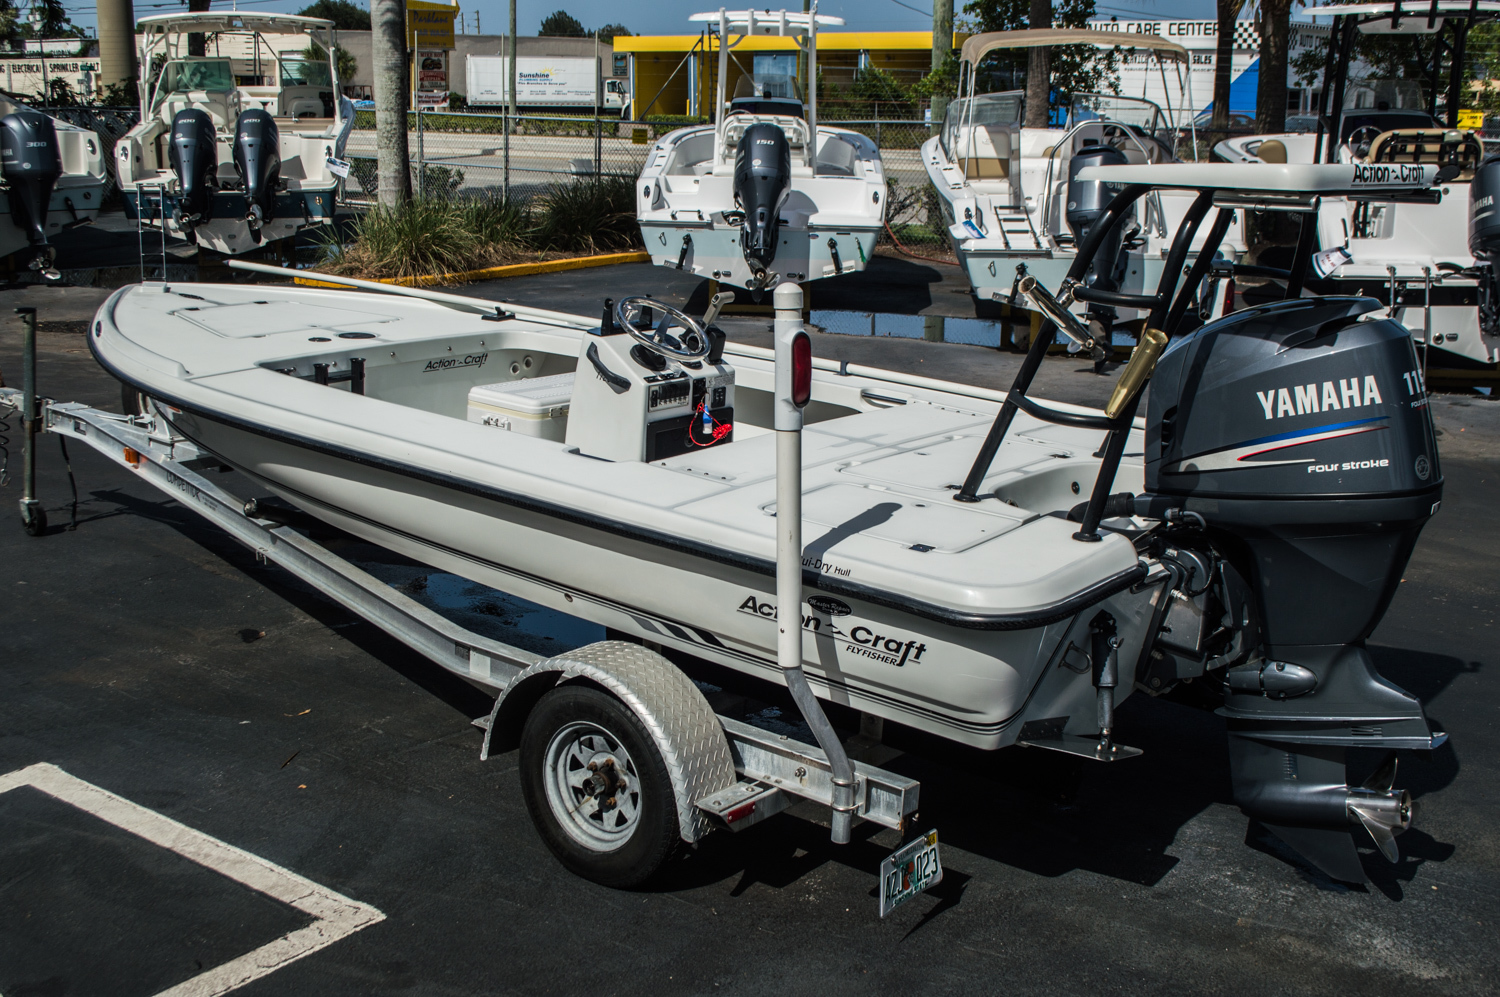 Used 2000 action craft 172 flyfisher boat for sale in west for Action craft boat parts